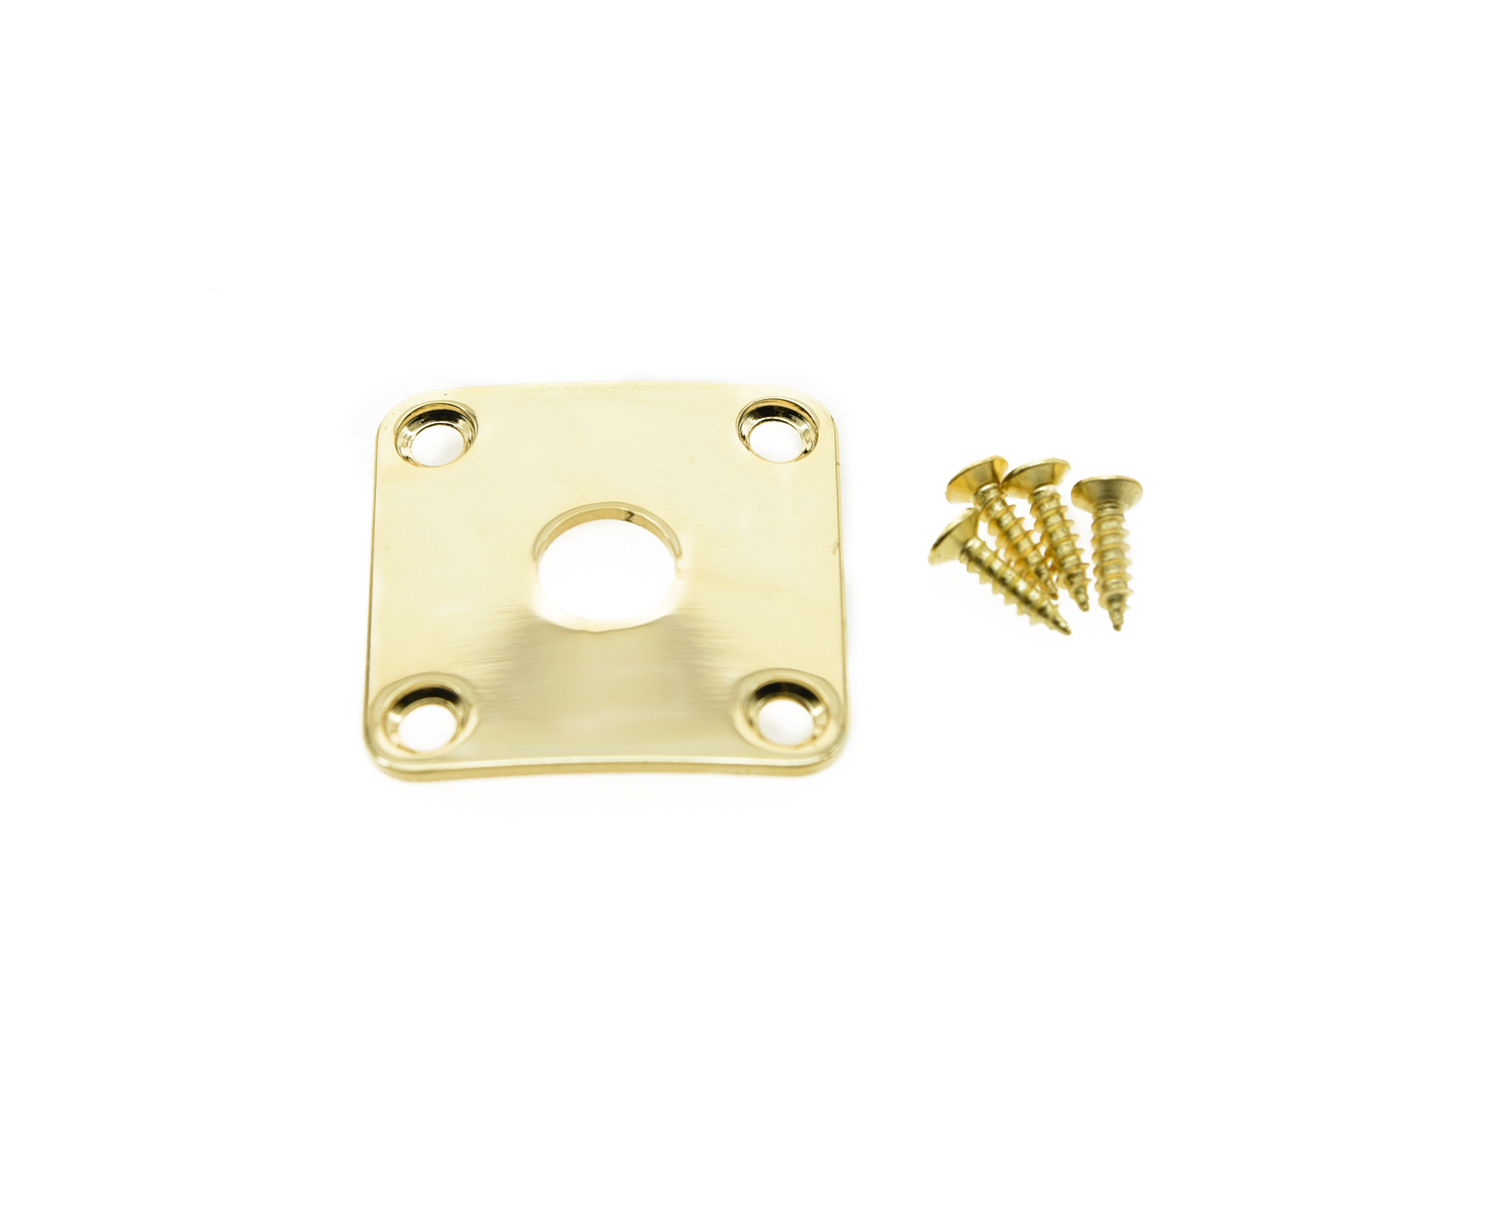 NICKEL METAL JACK PLATE FOR GIBSON LES PAUL GUITAR SQUARE CURVED W//SCREWS *NEW*